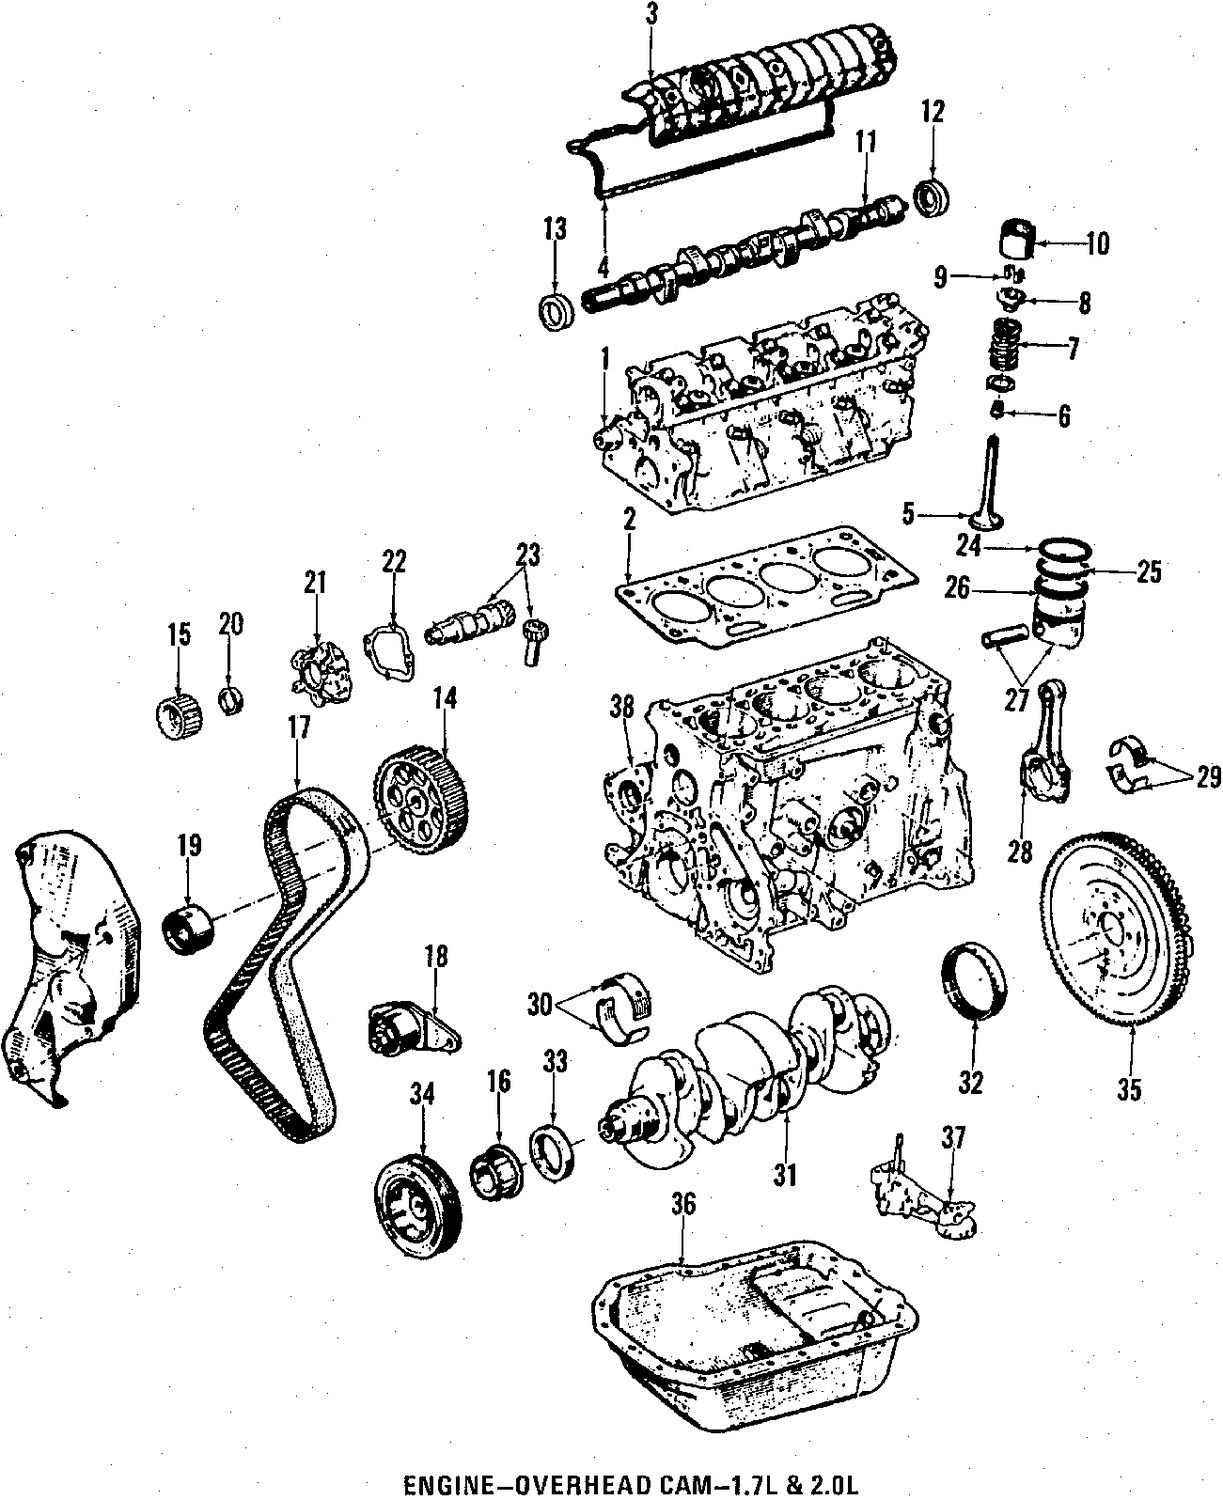 1985 renault encore camshaft and timing parts